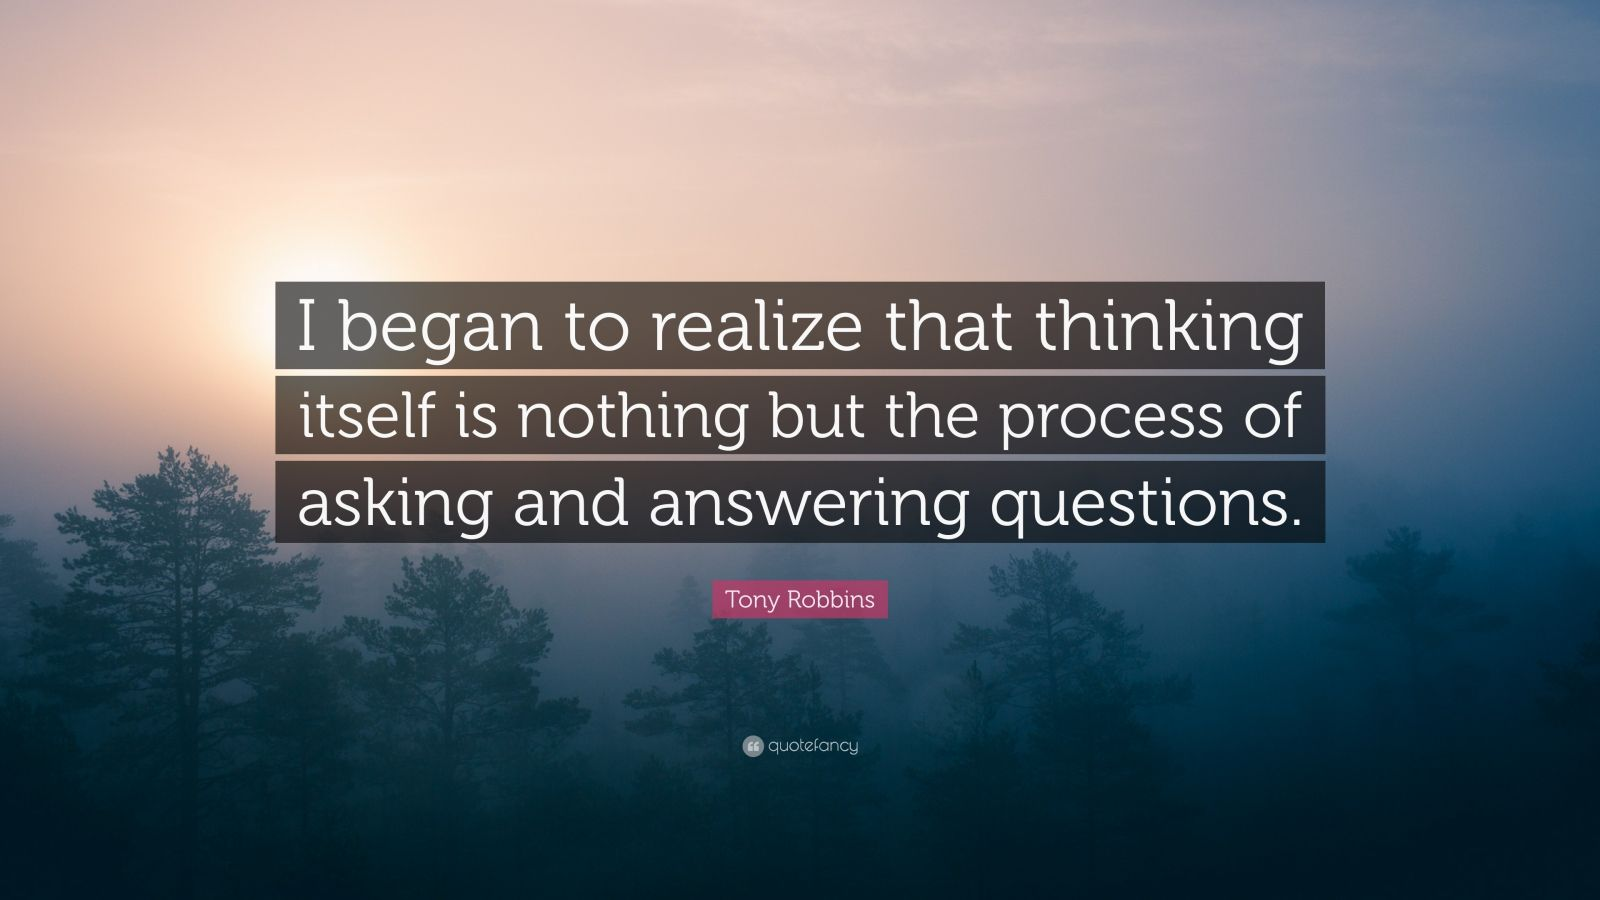 """Tony Robbins Quote: """"I began to realize that thinking itself is nothing but the process of asking and answering questions."""""""